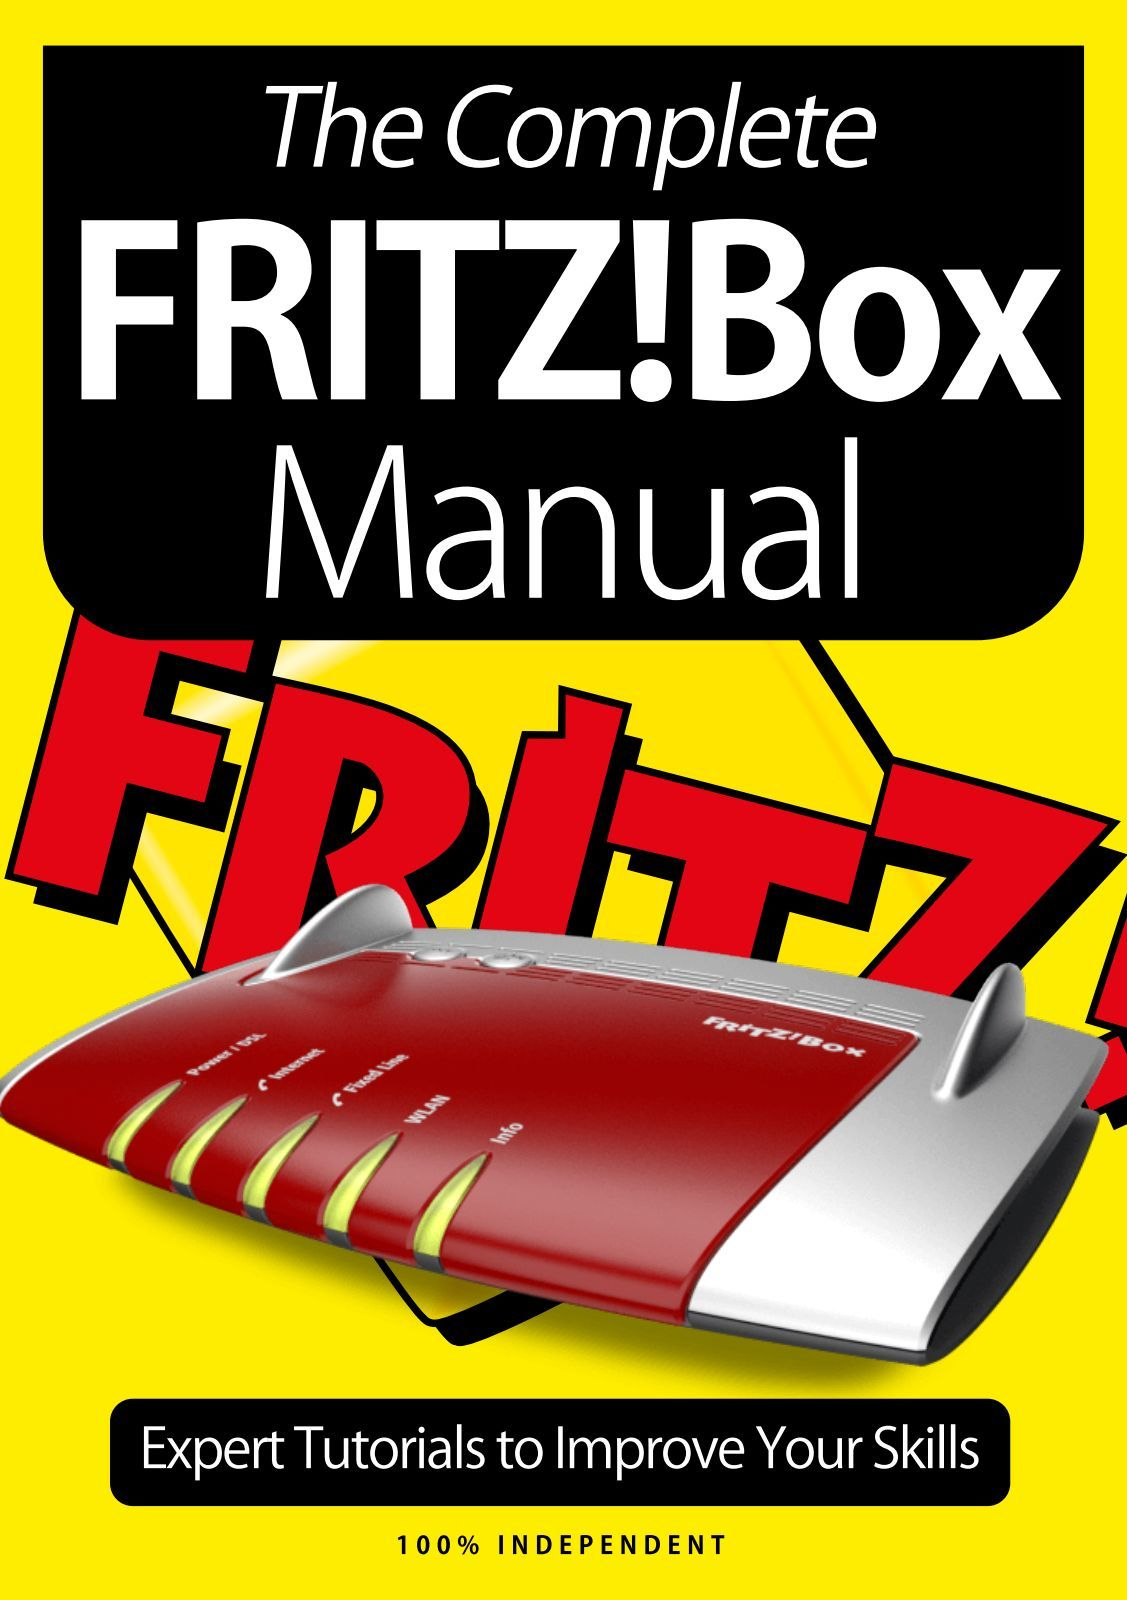 FRITZBox   The Complete Manual   issue 20/20